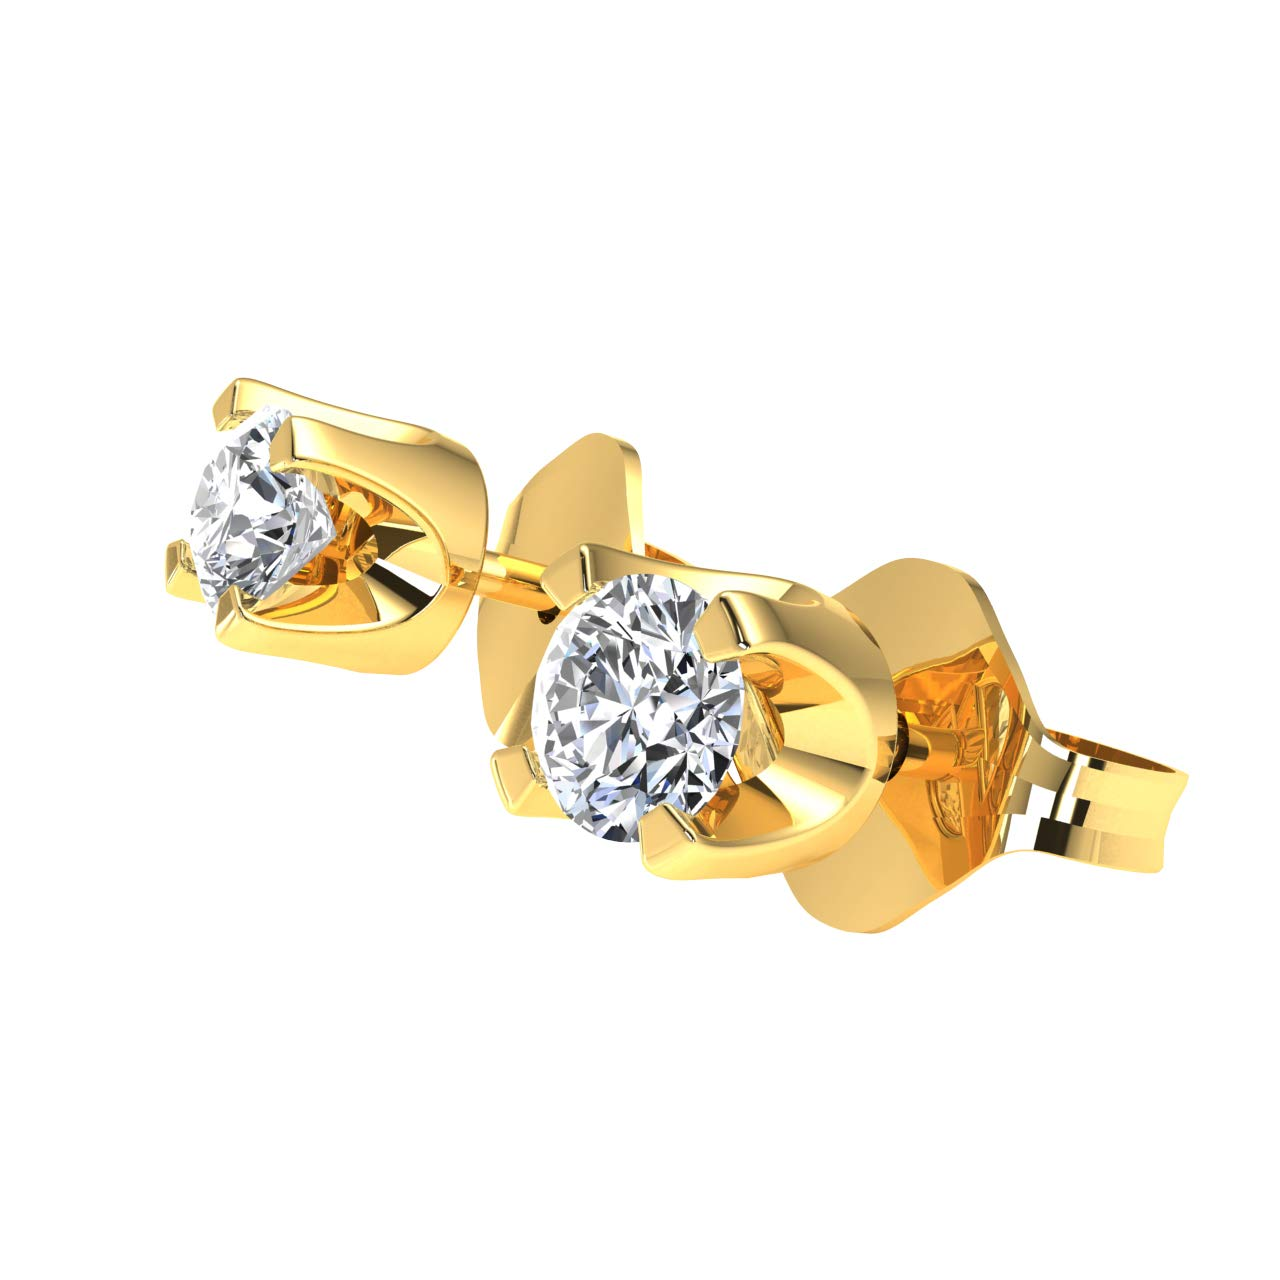 Jewelry for Women JewelWeSell 14K Yellow Gold Classic Solitaire Stud Earrings For Women 0.22 cttw Round Real Diamond (I3 Clarity) Prong Setting